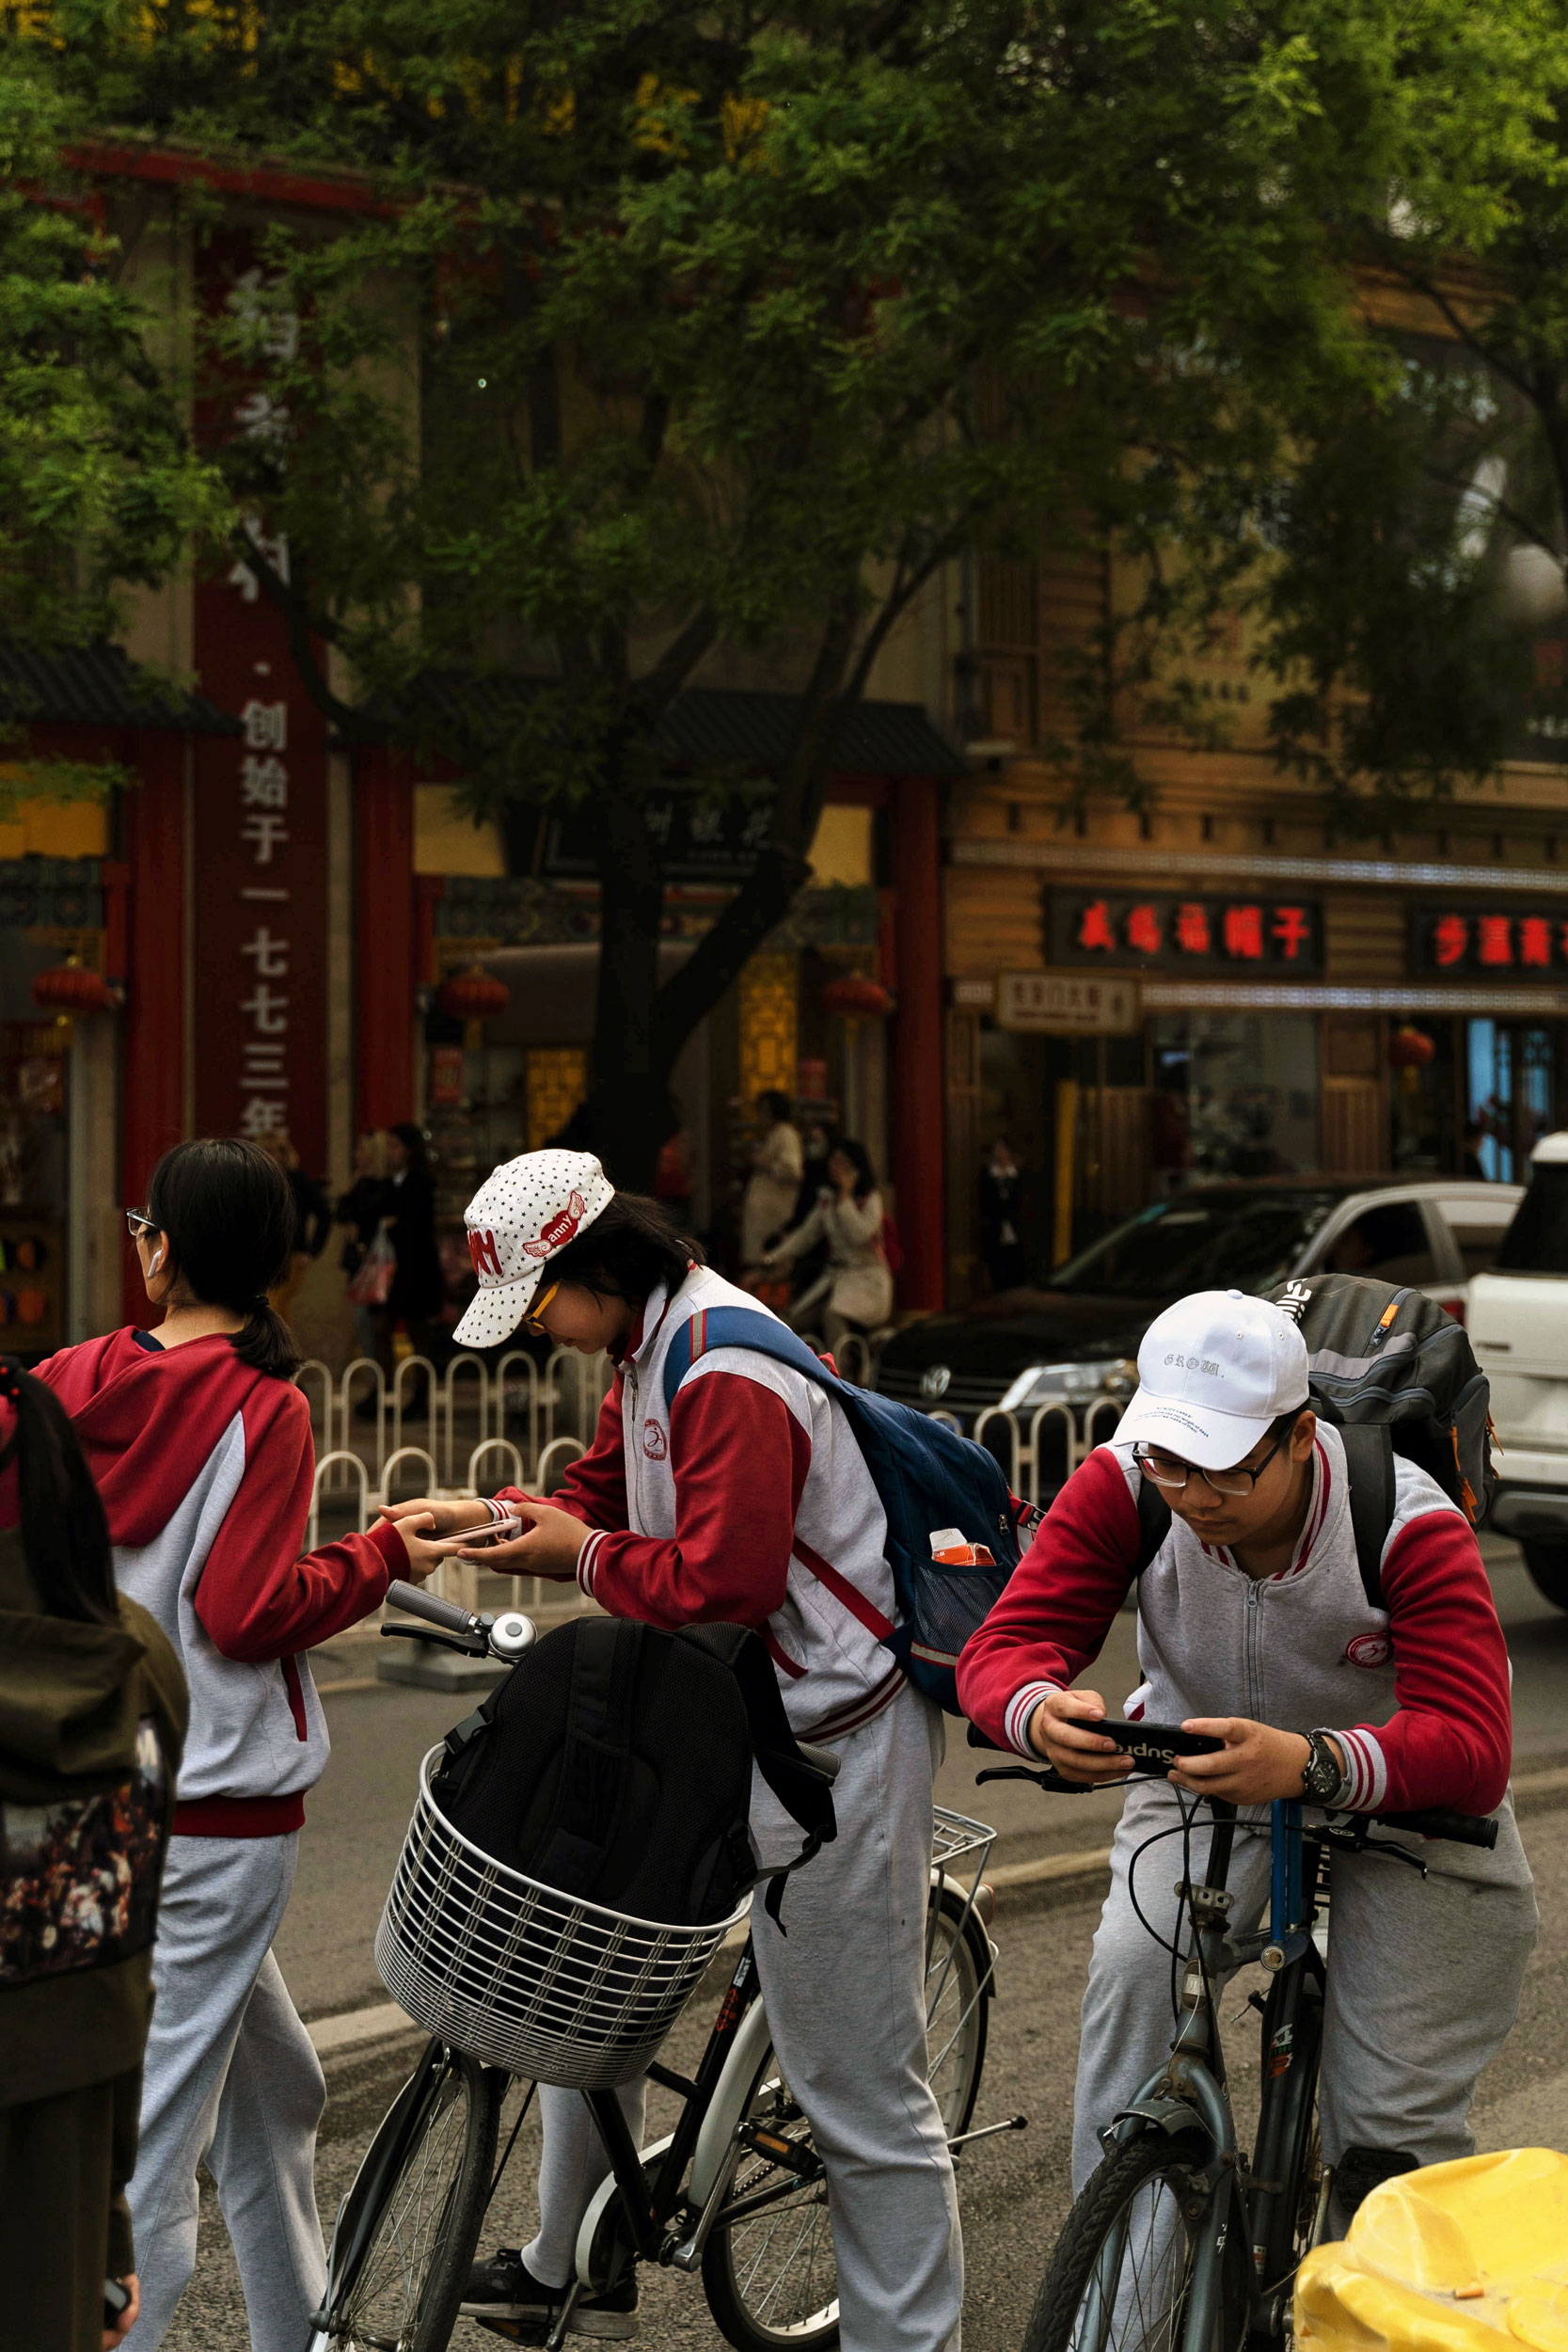 Some Chinese students take a break on their bicycles in Wangfujin.